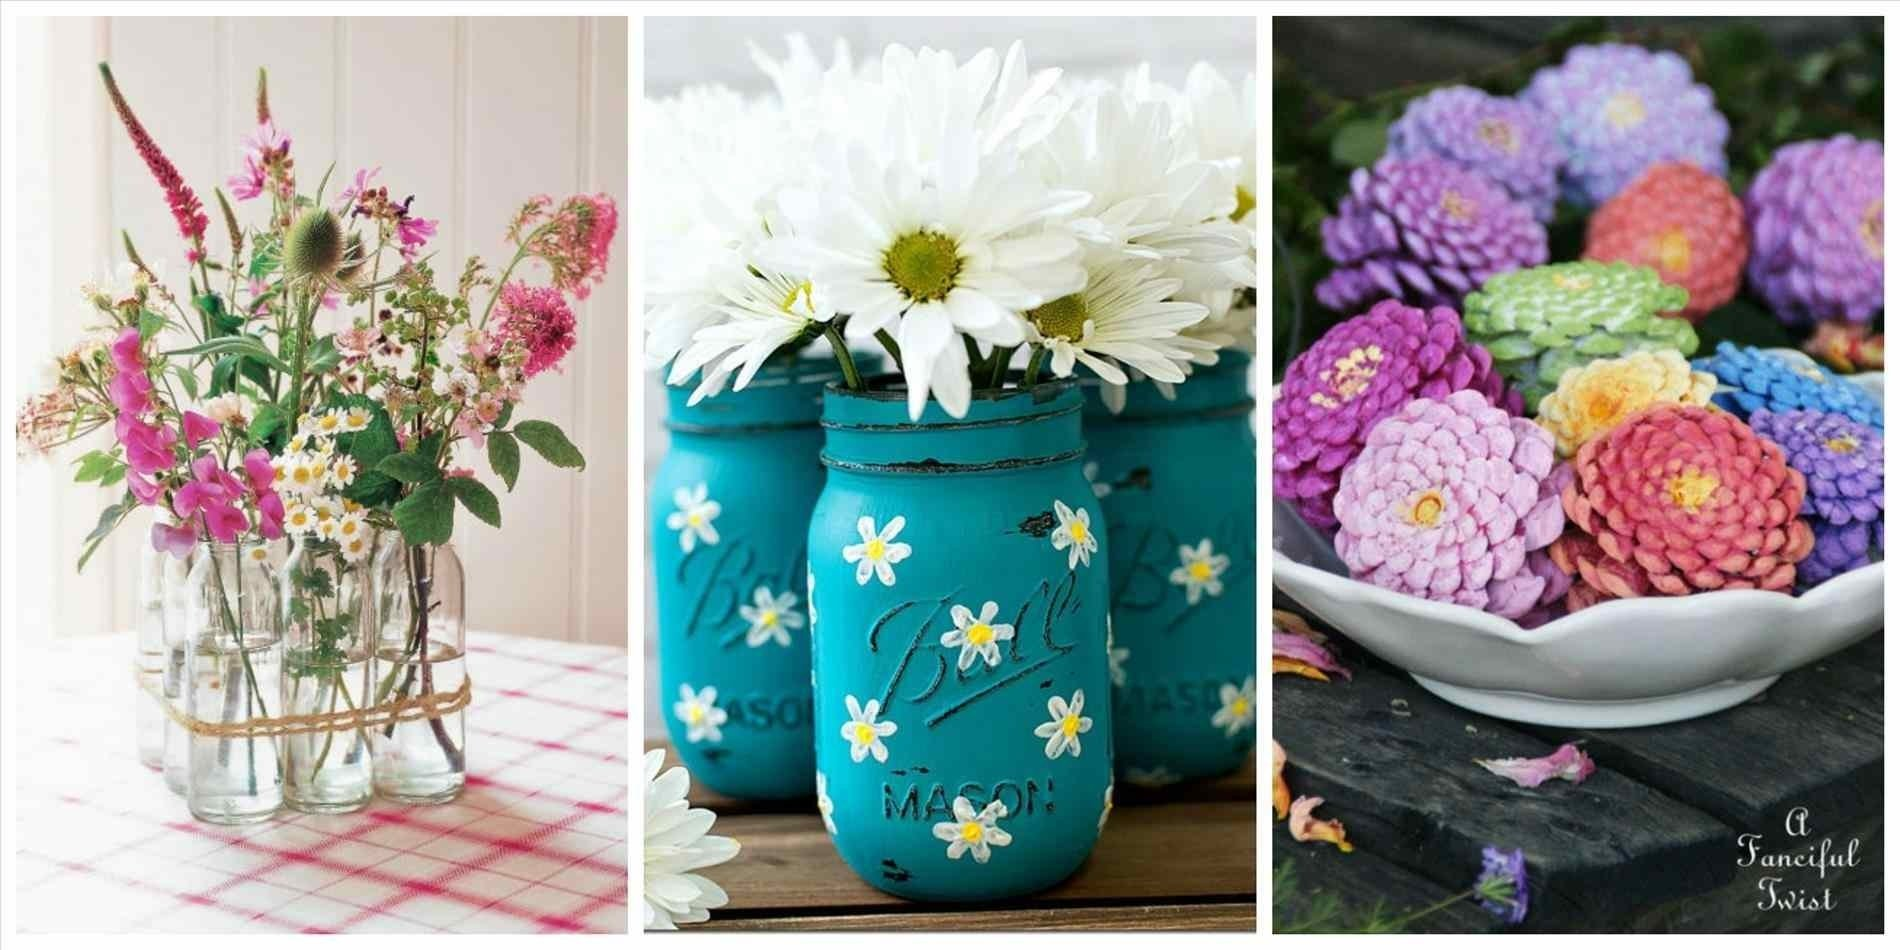 10 Ideal Craft Ideas For Adults To Sell